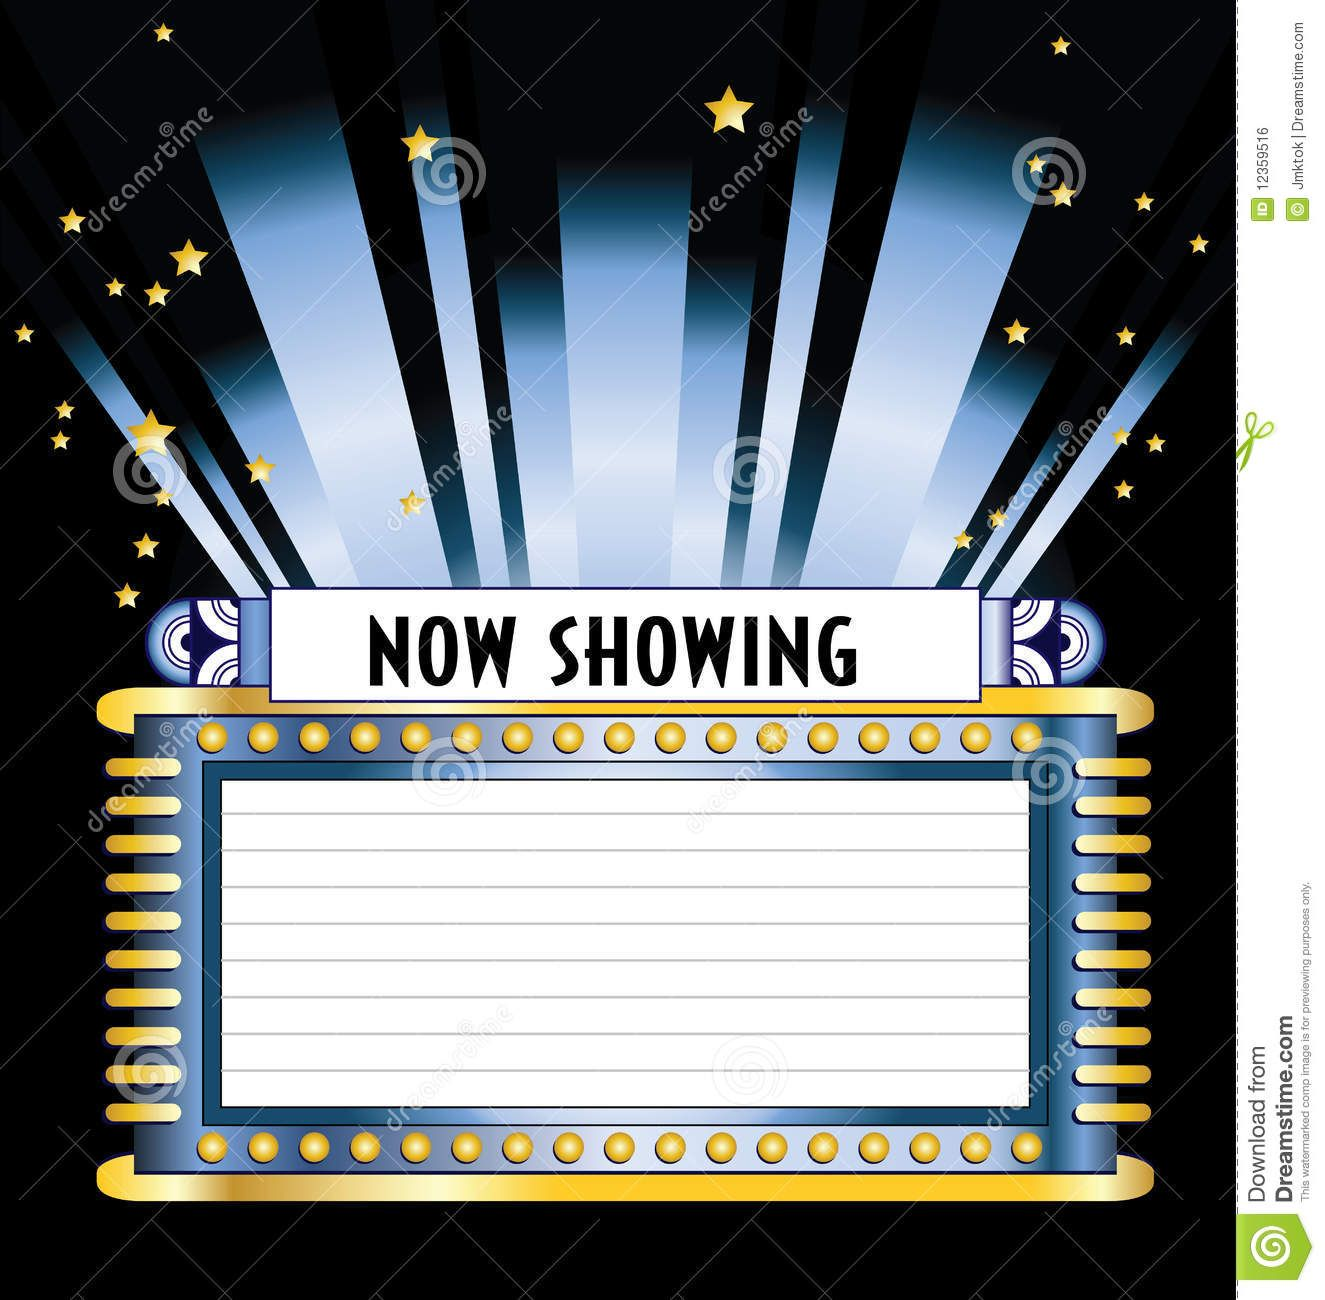 Light Up Theater: Download From Over 26 Million